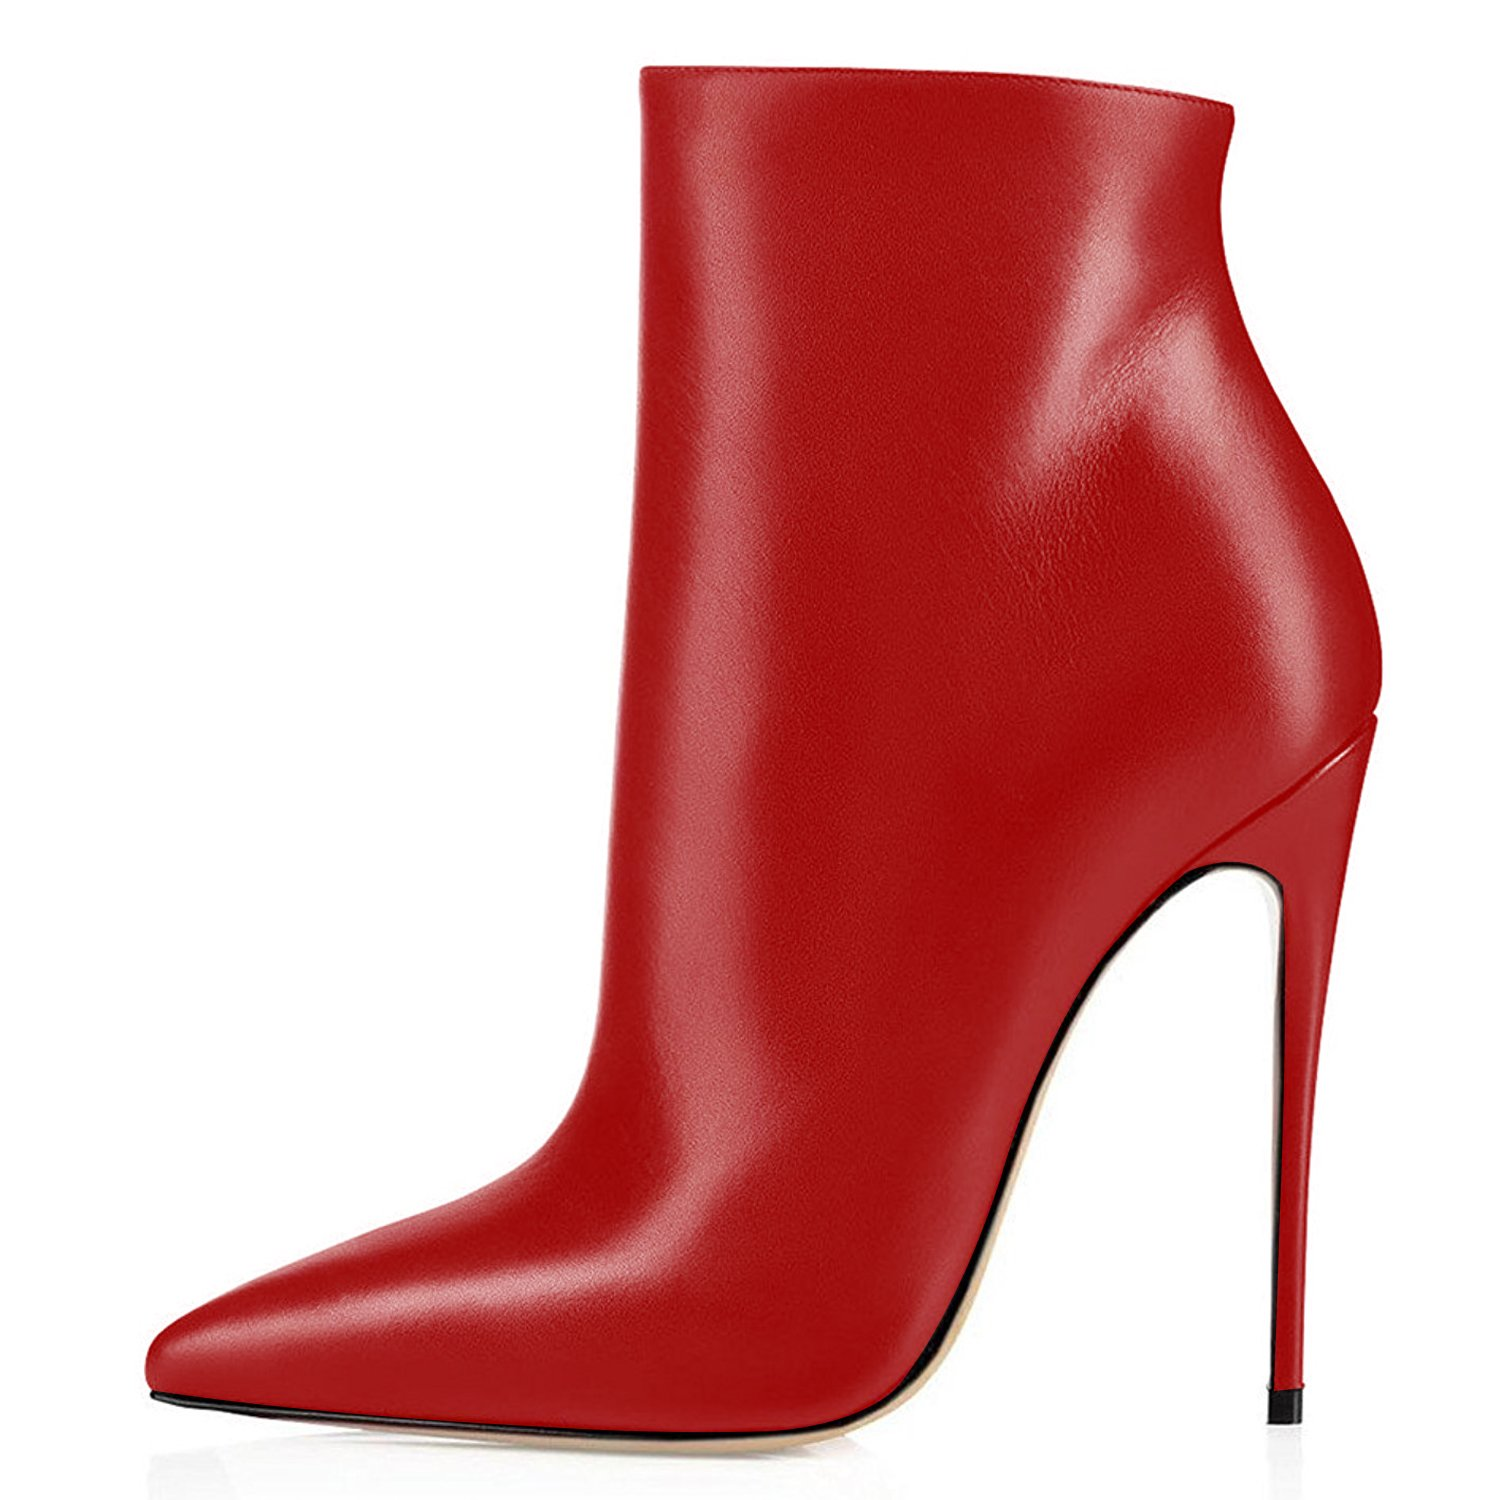 ELASHE Bottes Classiques Classiques Femme Rouge | 12cm ELASHE Bottine à Talon Haut | Zip Stiletto Talons hauts Ankle Boots Chaussures Rouge 8f3c9b1 - jessicalock.space